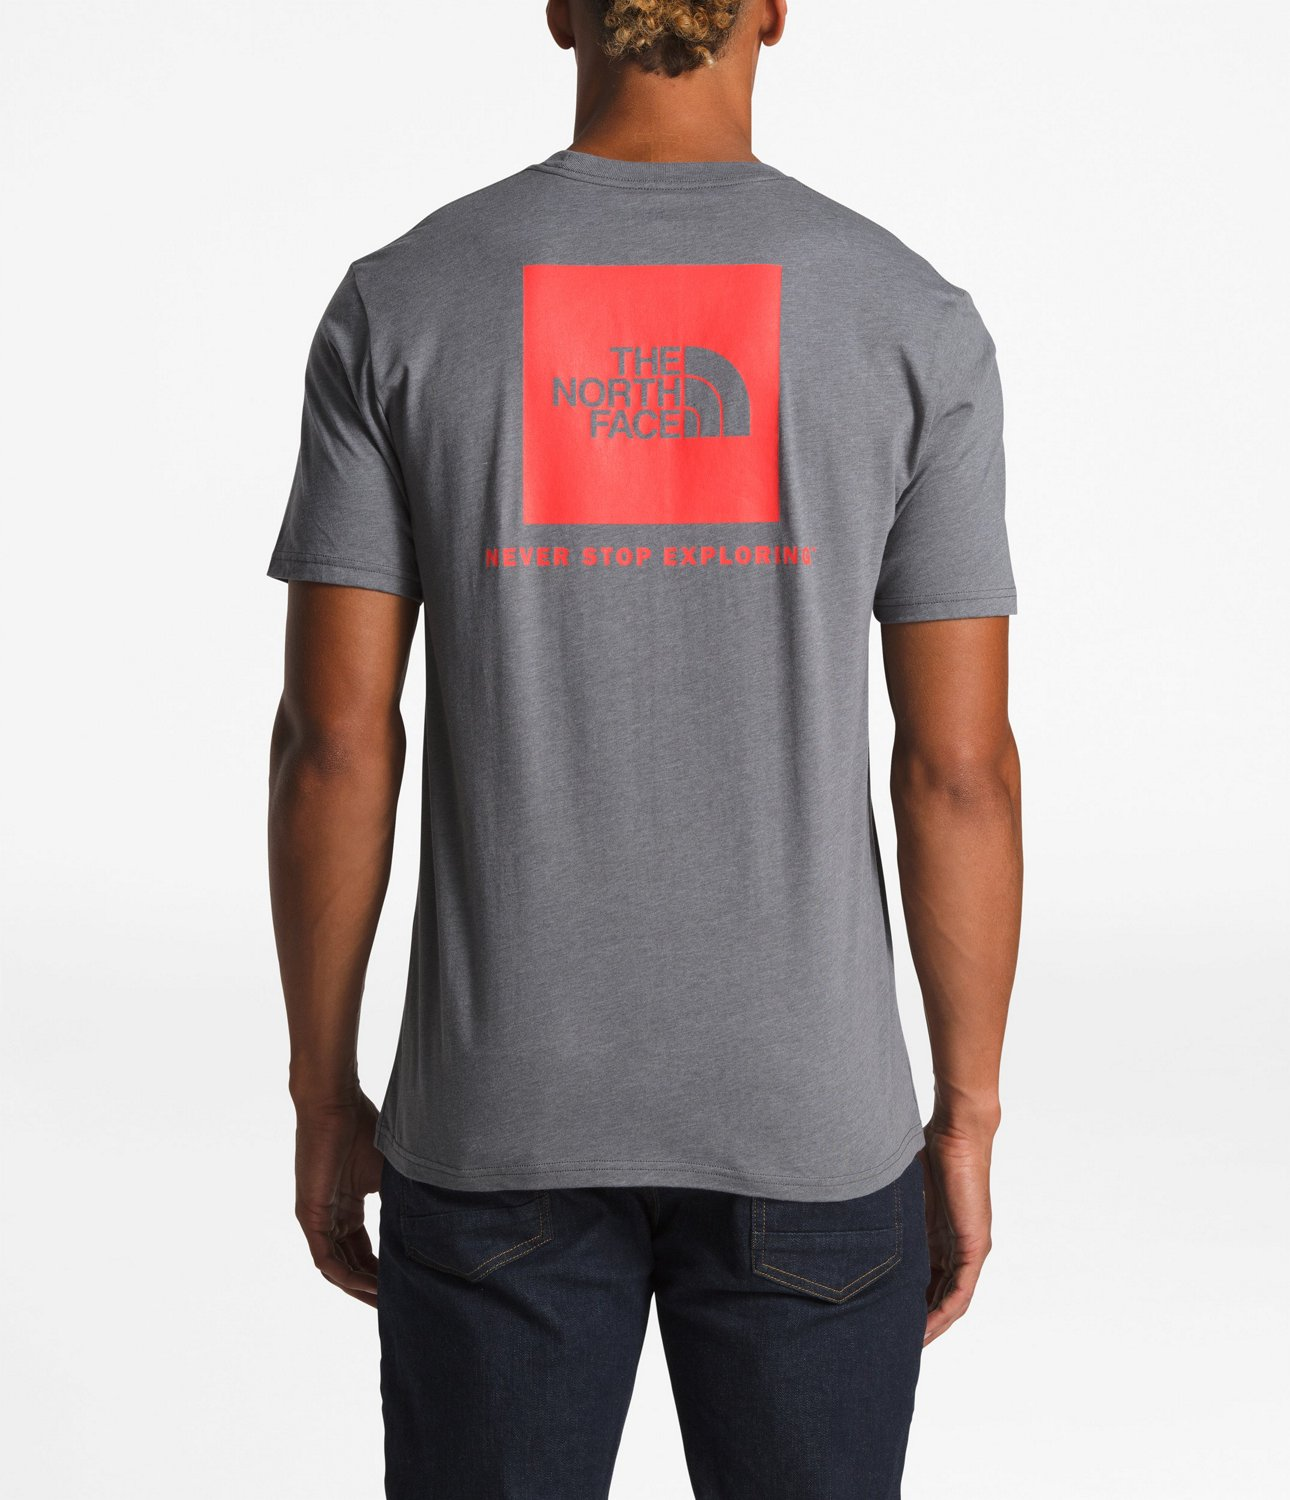 05a941e54 The North Face Men's Red Box Short Sleeve T-shirt